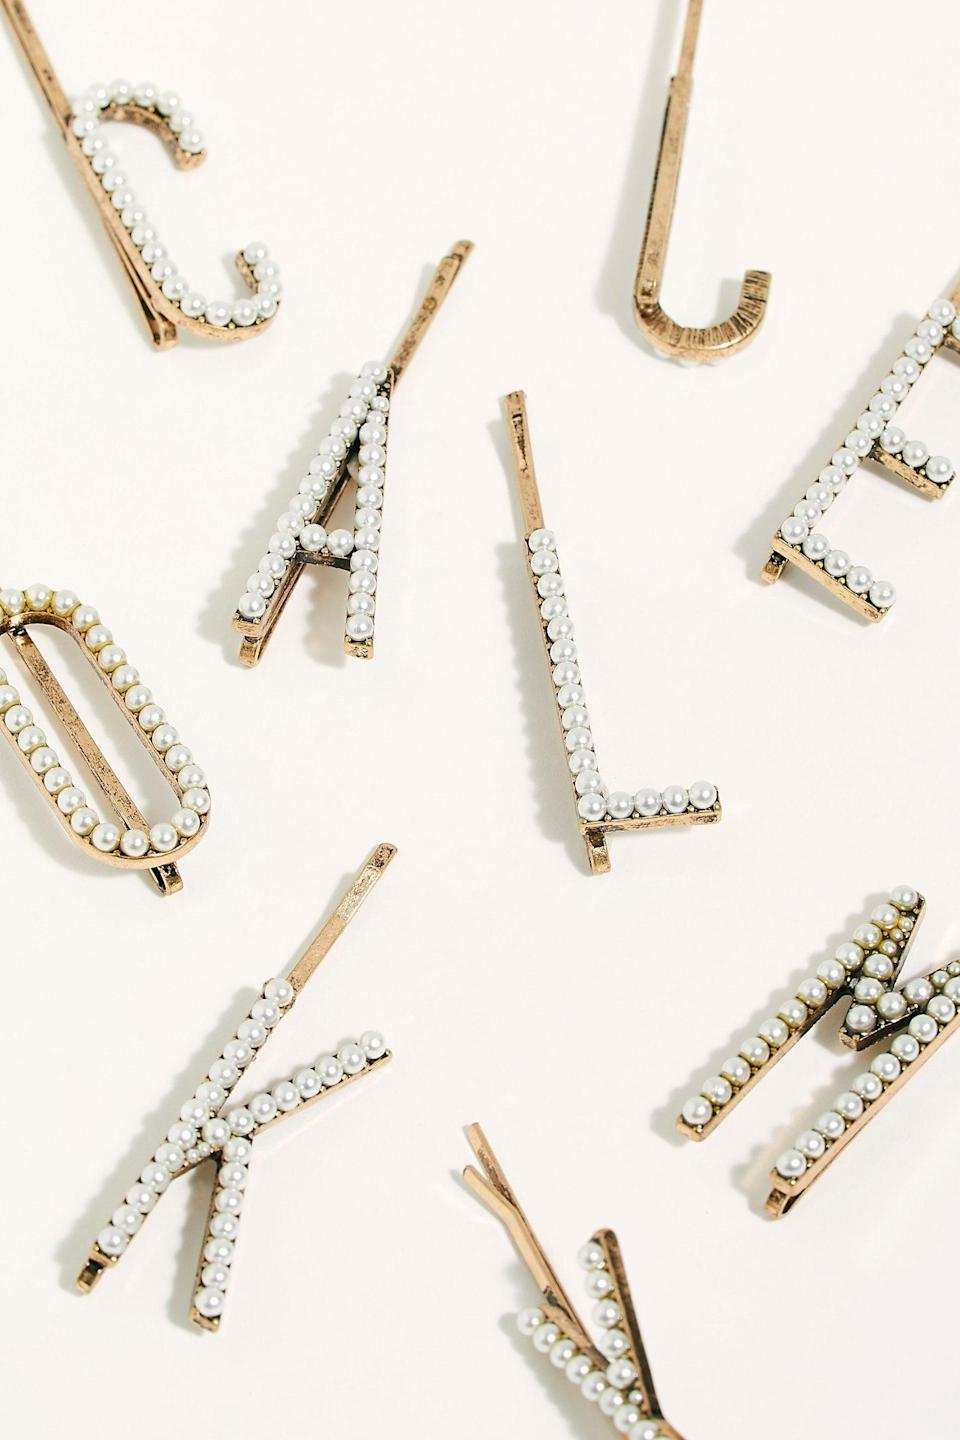 """<p>How cute are these <a href=""""https://www.popsugar.com/buy/Pearl-Letter-Bobby-Pins-530406?p_name=Pearl%20Letter%20Bobby%20Pins&retailer=freepeople.com&pid=530406&price=12&evar1=fab%3Aus&evar9=36282856&evar98=https%3A%2F%2Fwww.popsugar.com%2Fphoto-gallery%2F36282856%2Fimage%2F47004708%2FPearl-Letter-Bobby-Pins&list1=shopping%2Cgifts%2Choliday%2Cgift%20guide%2Choliday%20fashion%2Cfashion%20gifts%2Cgifts%20for%20women&prop13=api&pdata=1"""" class=""""link rapid-noclick-resp"""" rel=""""nofollow noopener"""" target=""""_blank"""" data-ylk=""""slk:Pearl Letter Bobby Pins"""">Pearl Letter Bobby Pins</a> ($12)?</p>"""